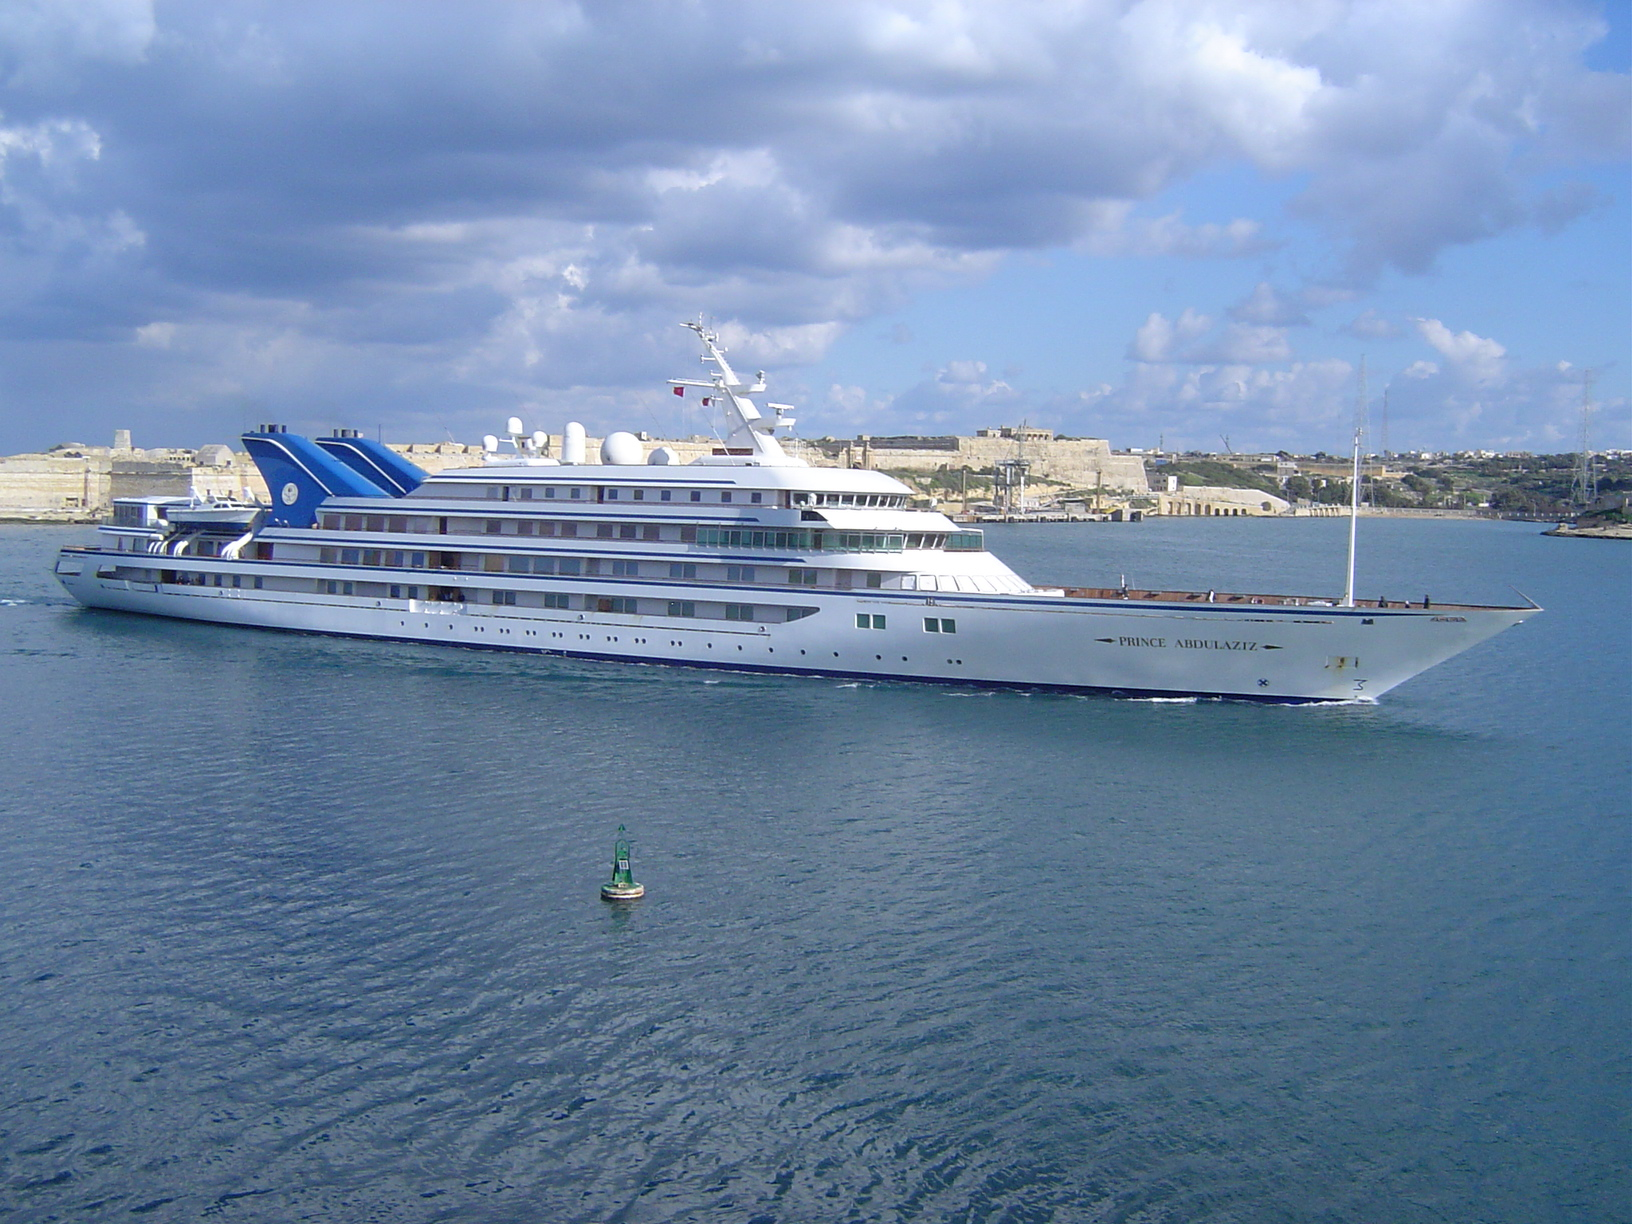 http://www.charterworld.com/news/wp-content/uploads/2011/03/Superyacht-Prince-Abdulaziz-Photo-by-Capt.-Lawrence-Dalli-Malta-Ship-Photos-2011..jpg